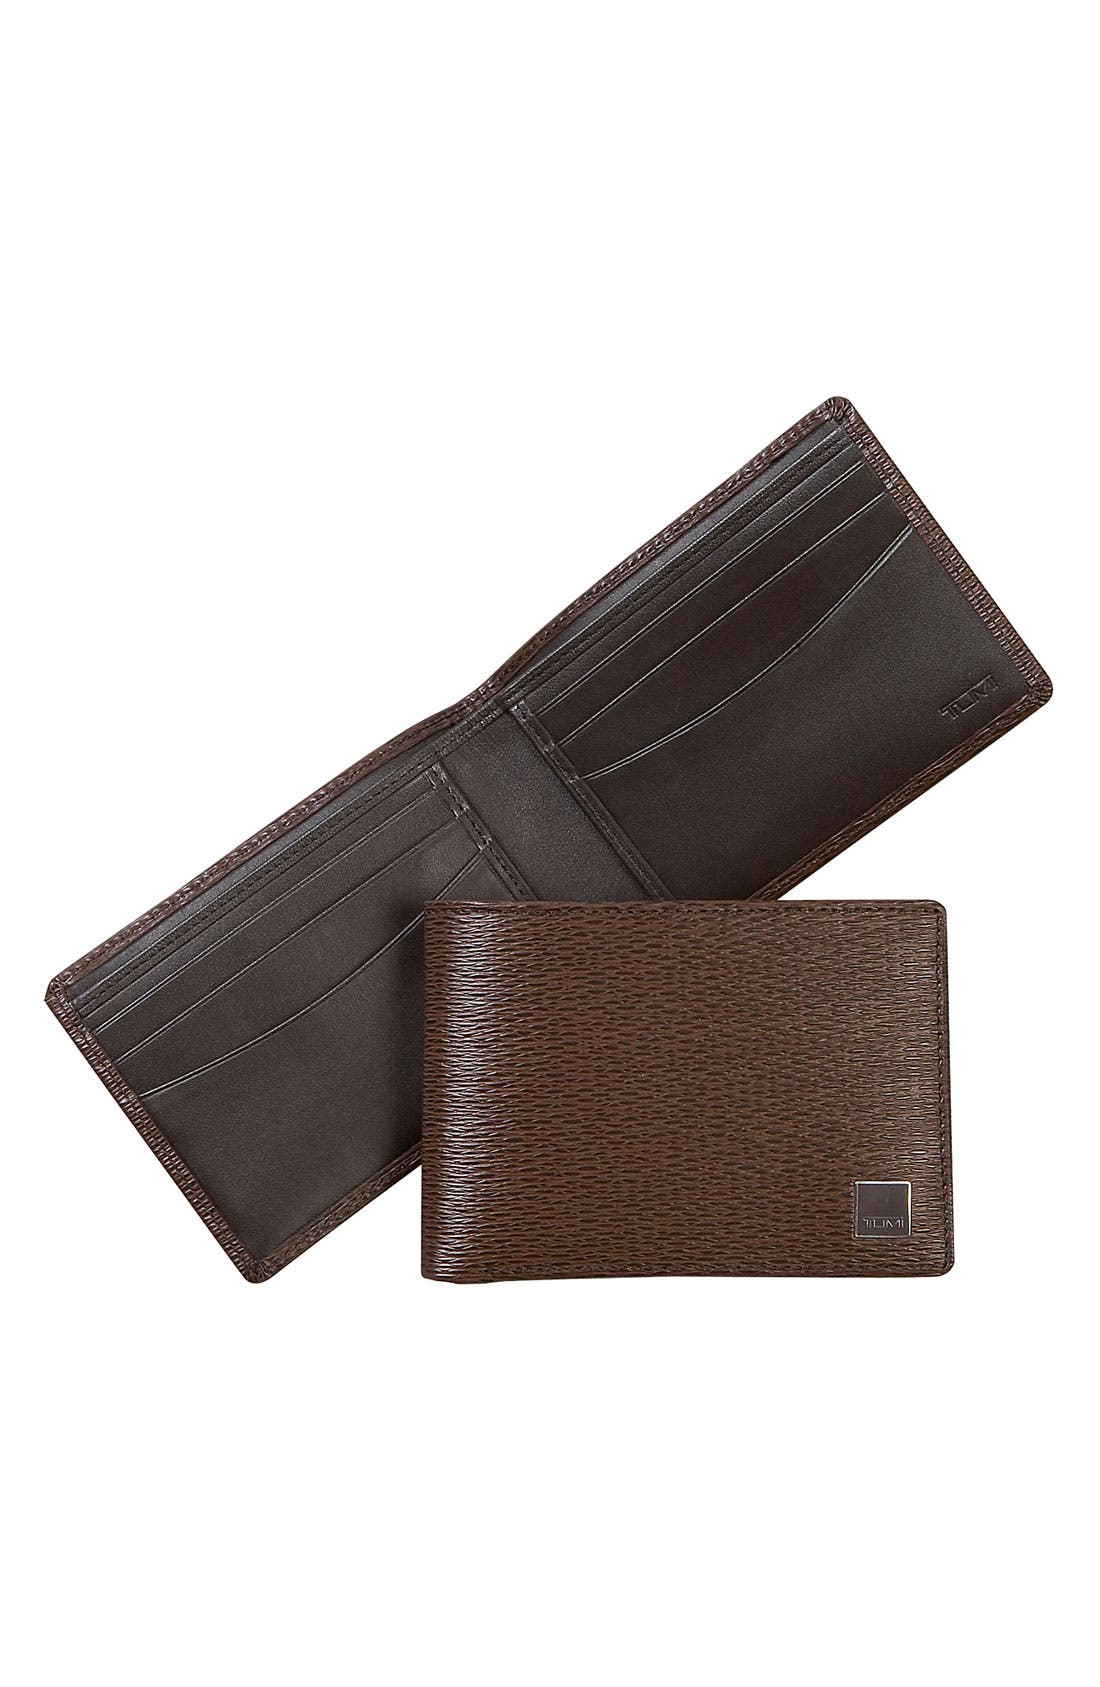 Alternate Image 1 Selected - Tumi 'Monaco' Slim Single Billfold Wallet